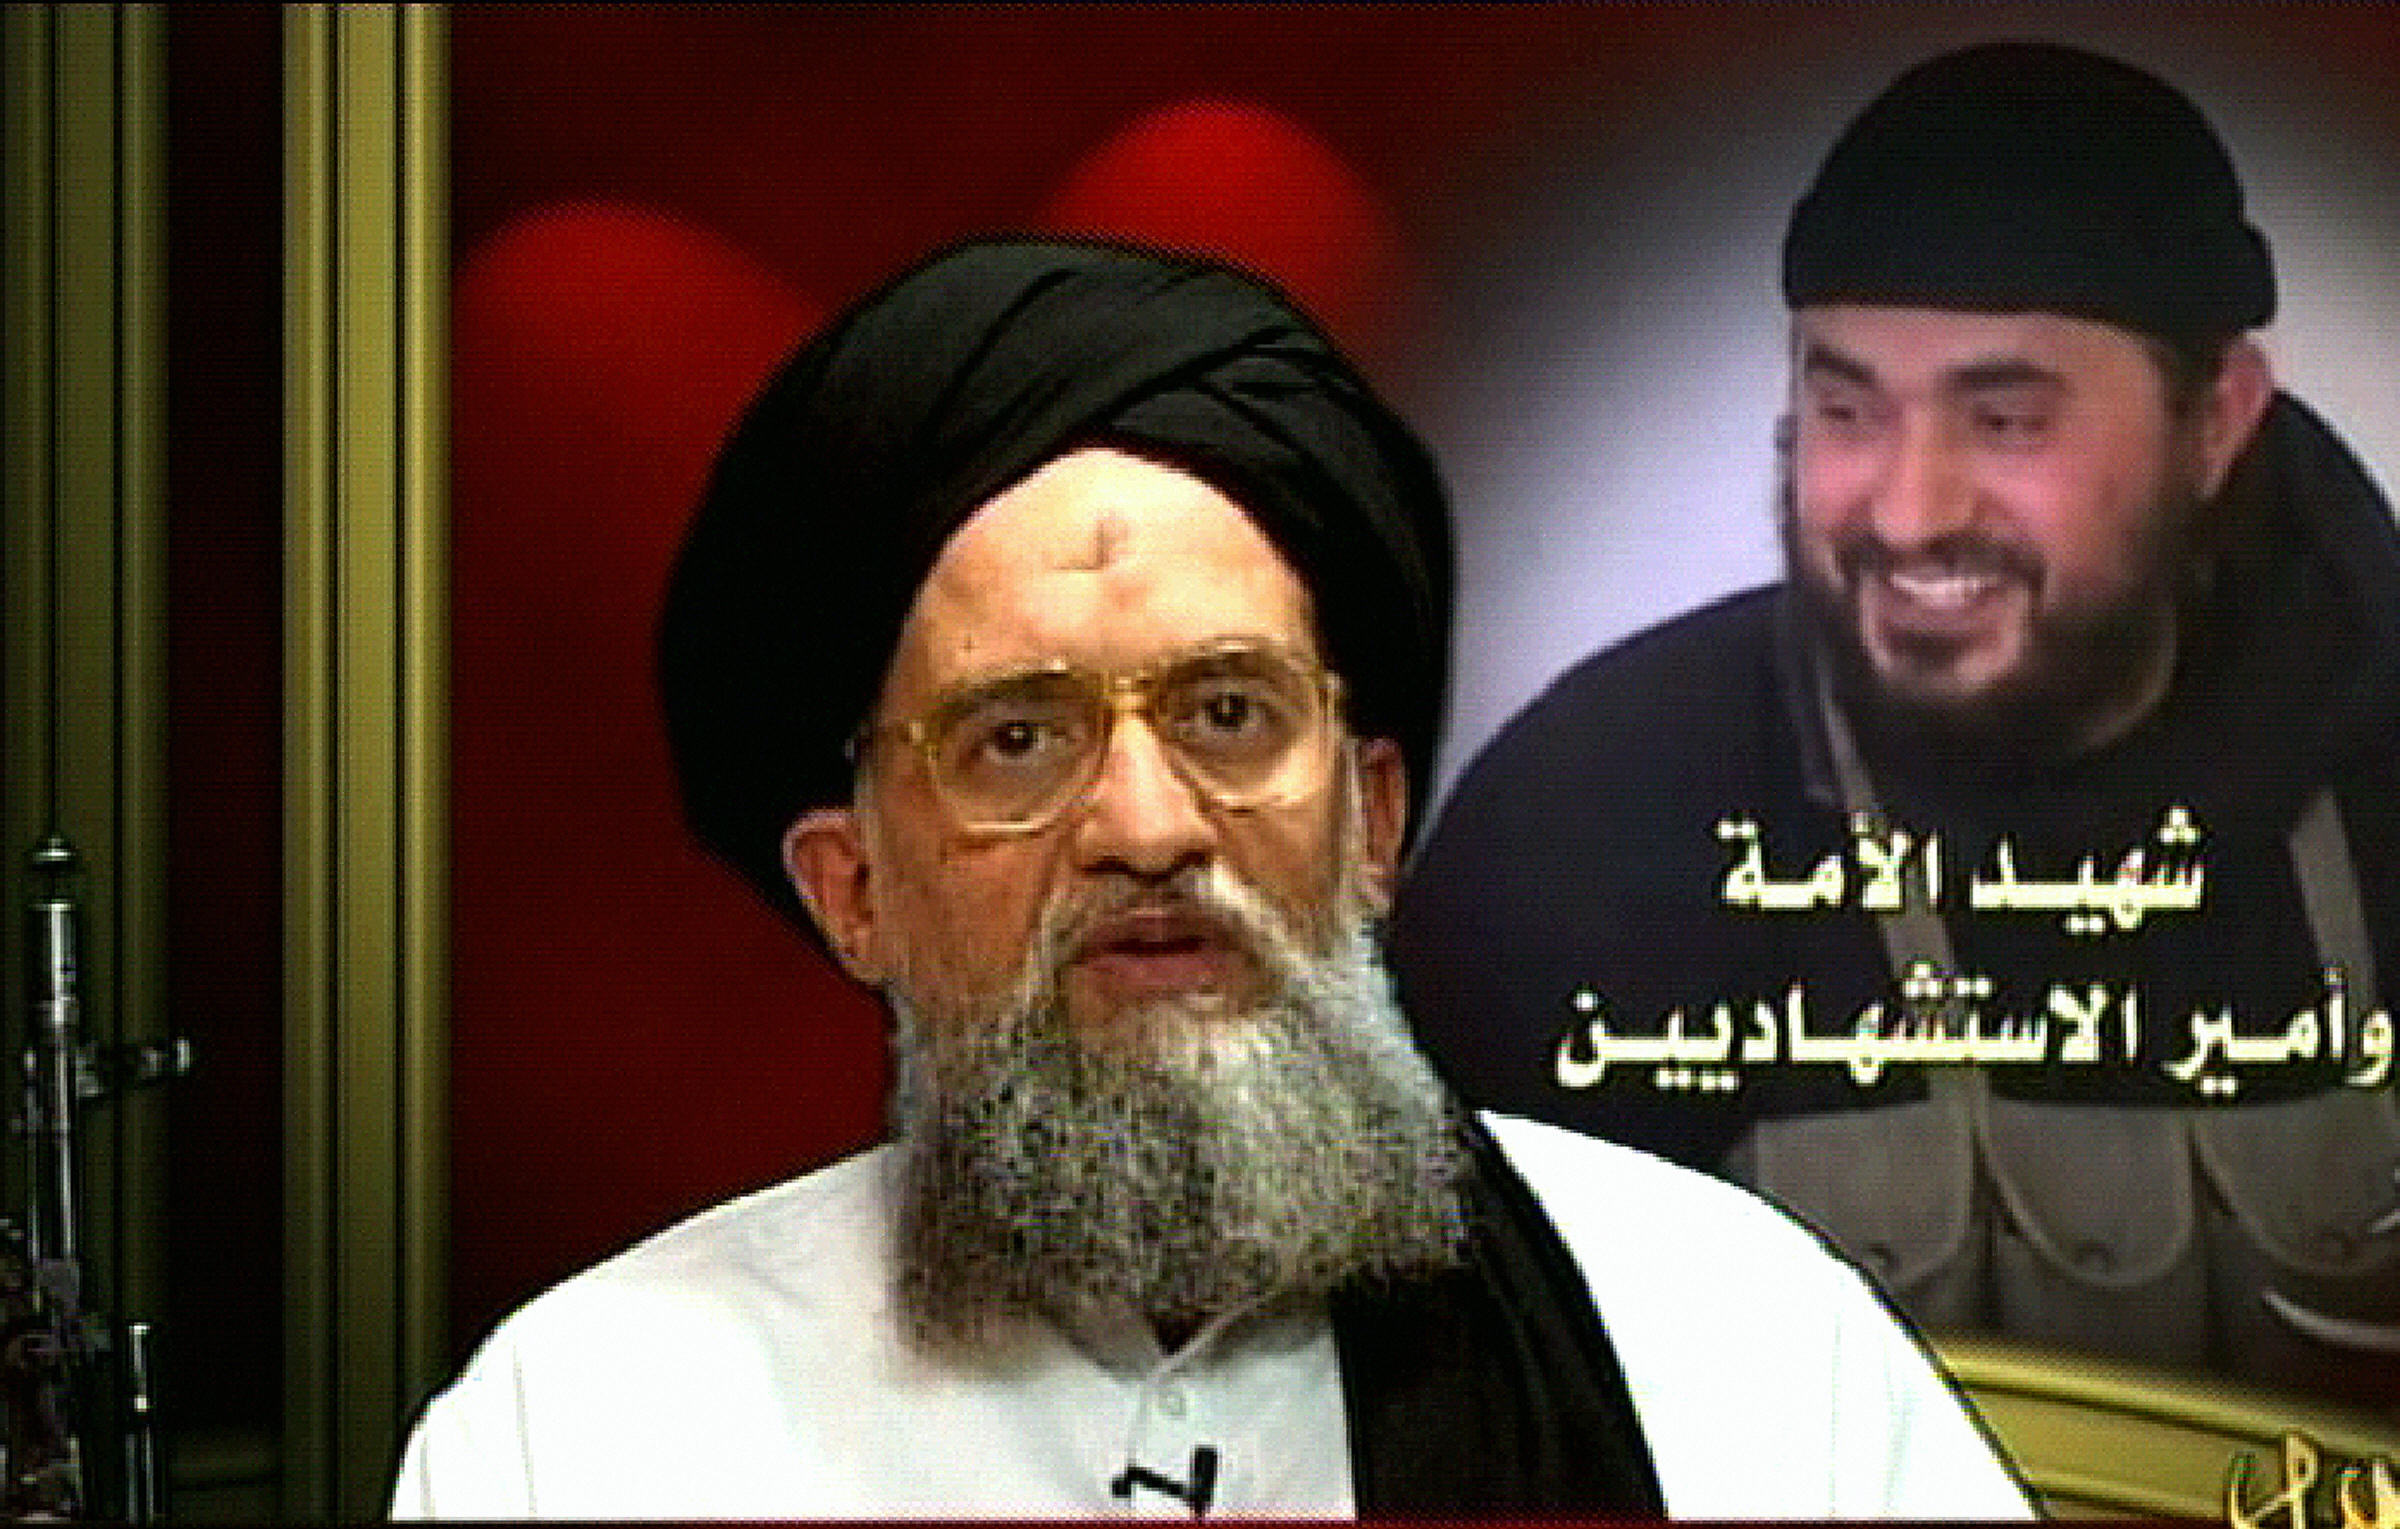 <b>$25 million: Ayman al-Zawahiri</b>                                   Ayman al-Zawahiri has led al-Qaeda since bin-Laden's death in 2011 and is currently the most-wanted terrorist on the FBI's list.  Prior to assuming leadership of the organization, al-Zawahiri was the second-in-command, considered both the ideological and operational leader of the group.